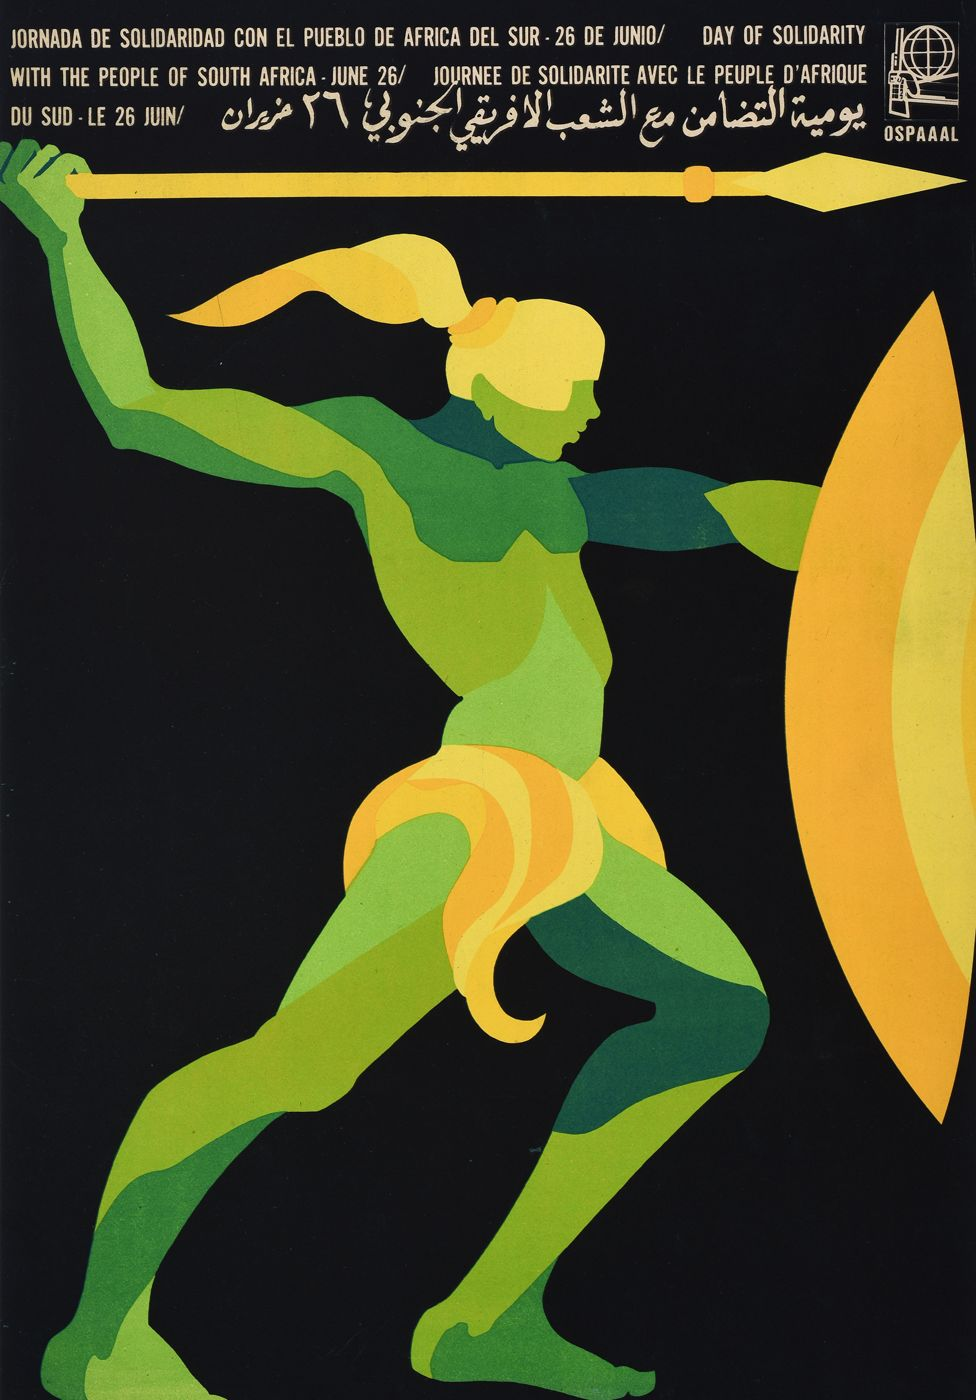 An Ospaaal poster entitled Day of Solidarity with the People of South Africa, 1968, showing a stylised design of a warrior with a spear and shield